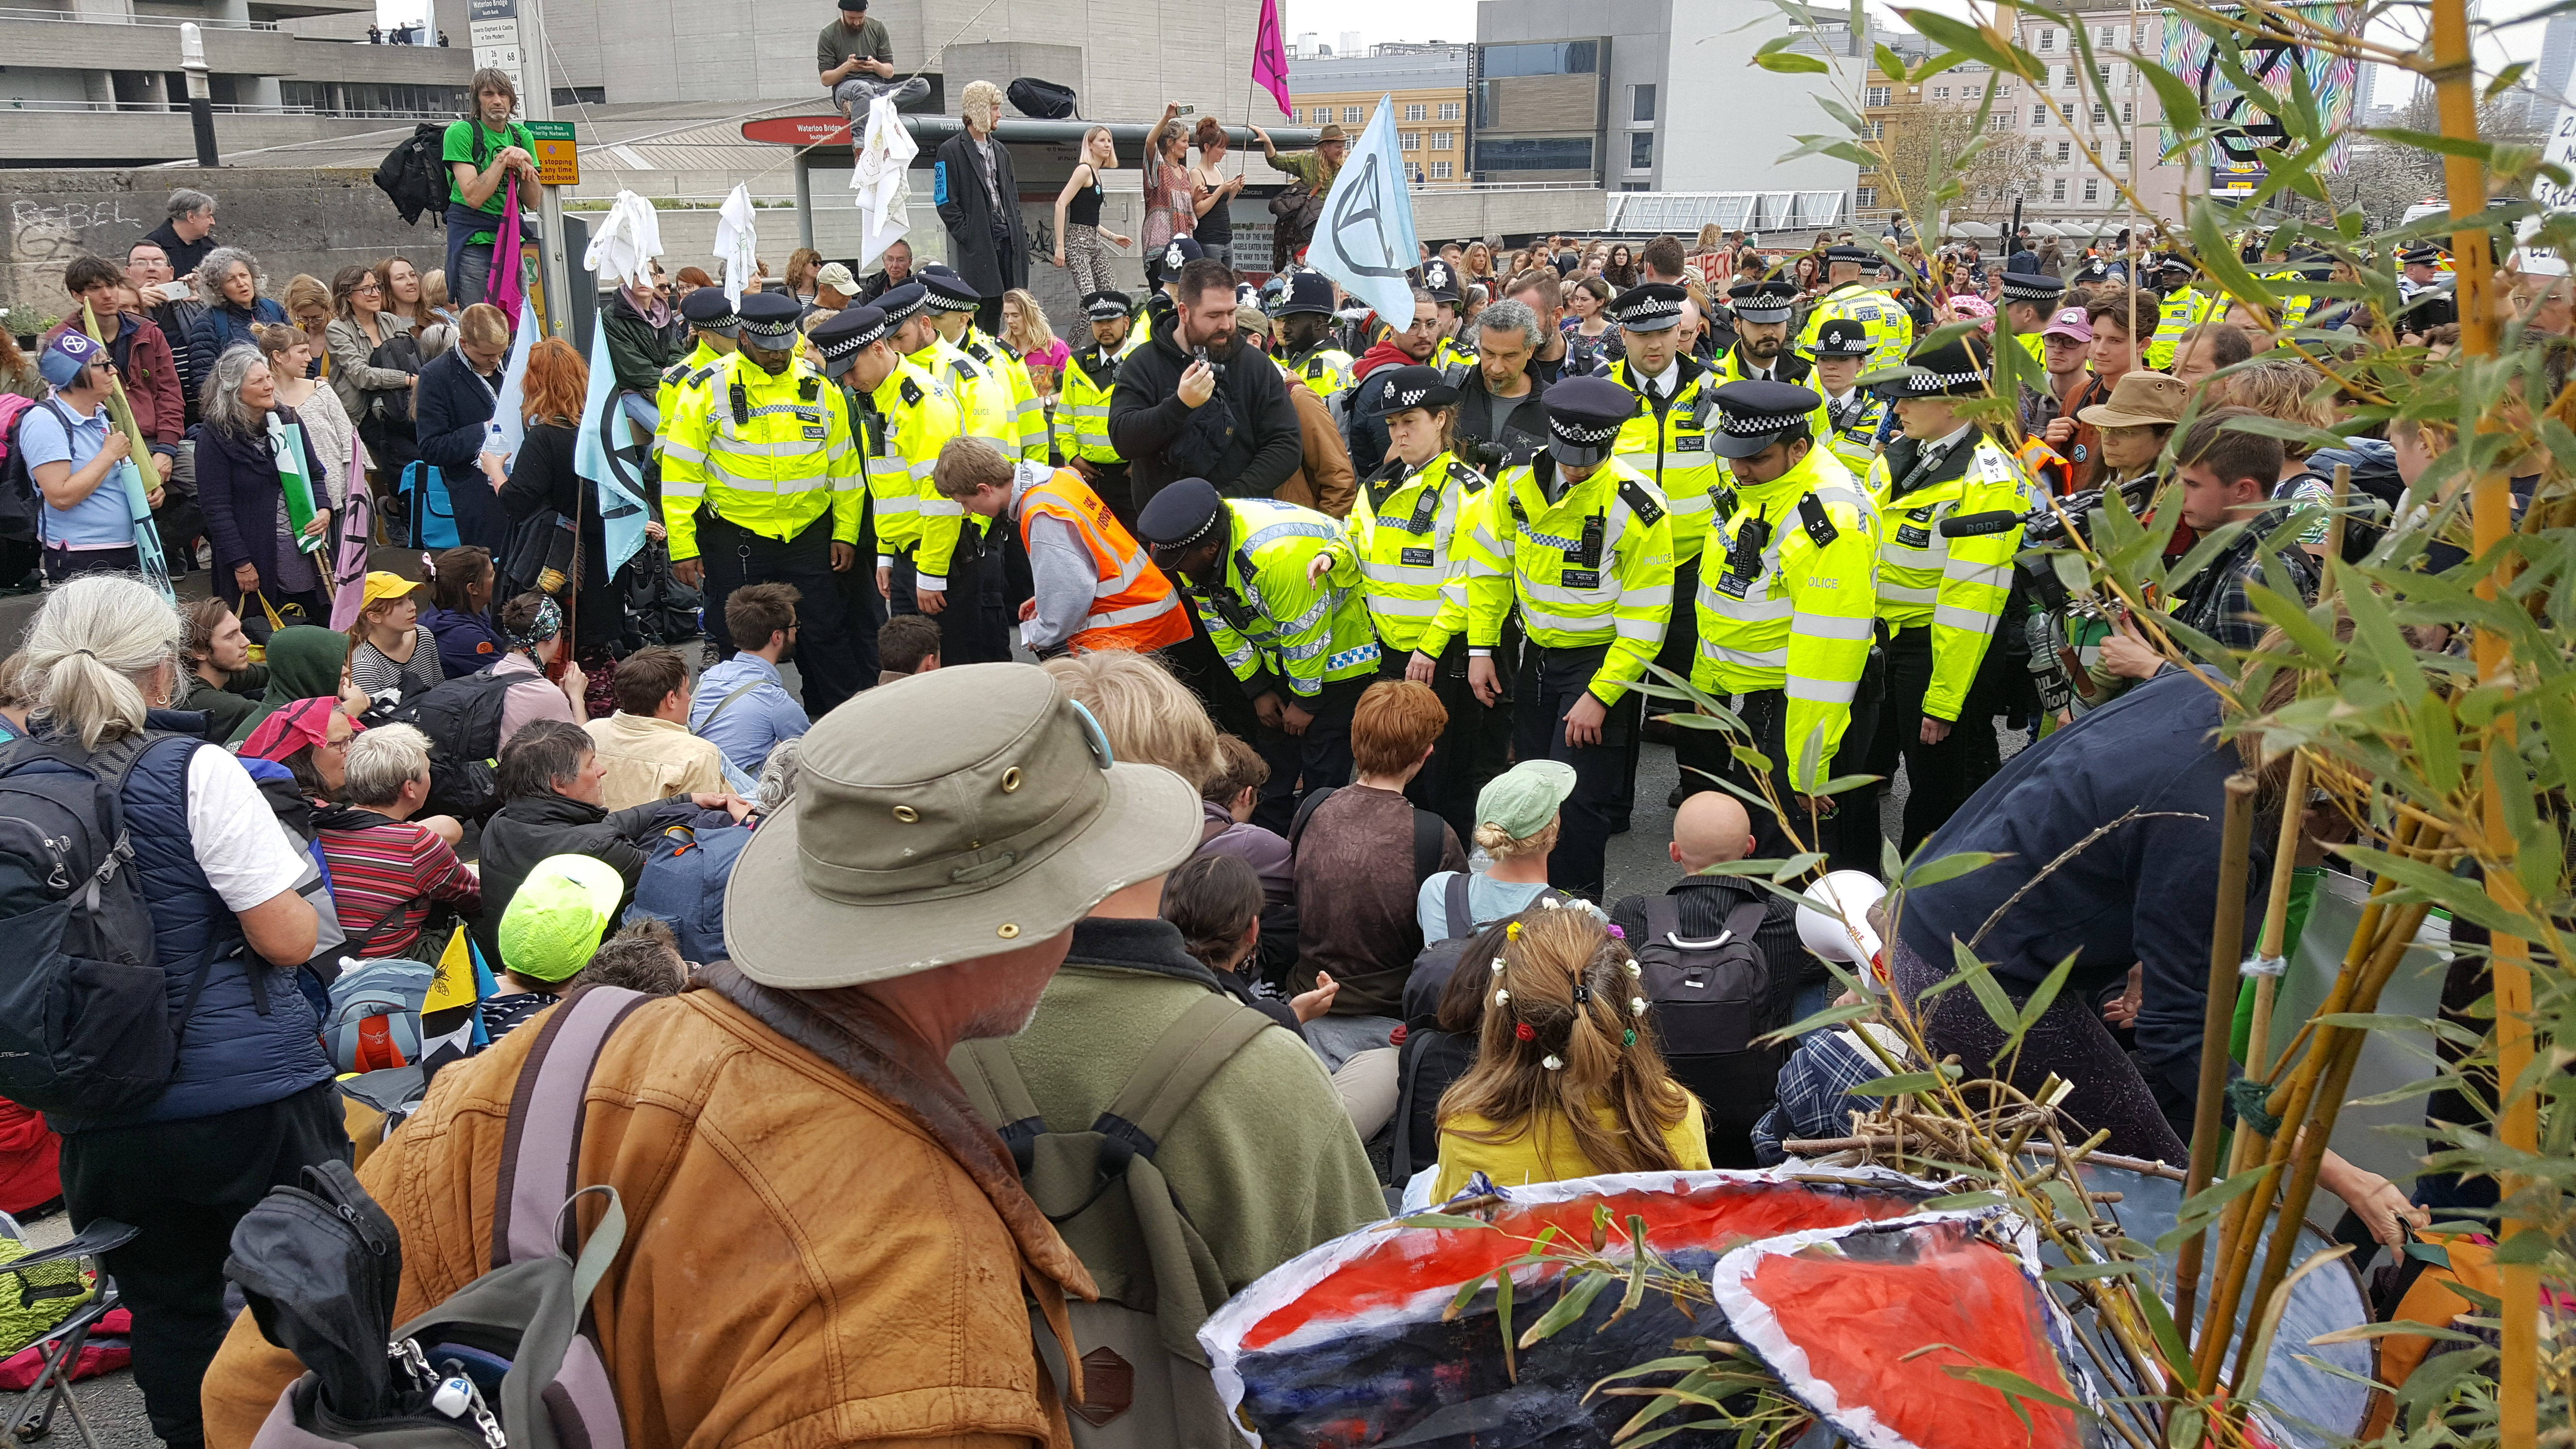 A line of police face a crowd of protestors sat on the ground.